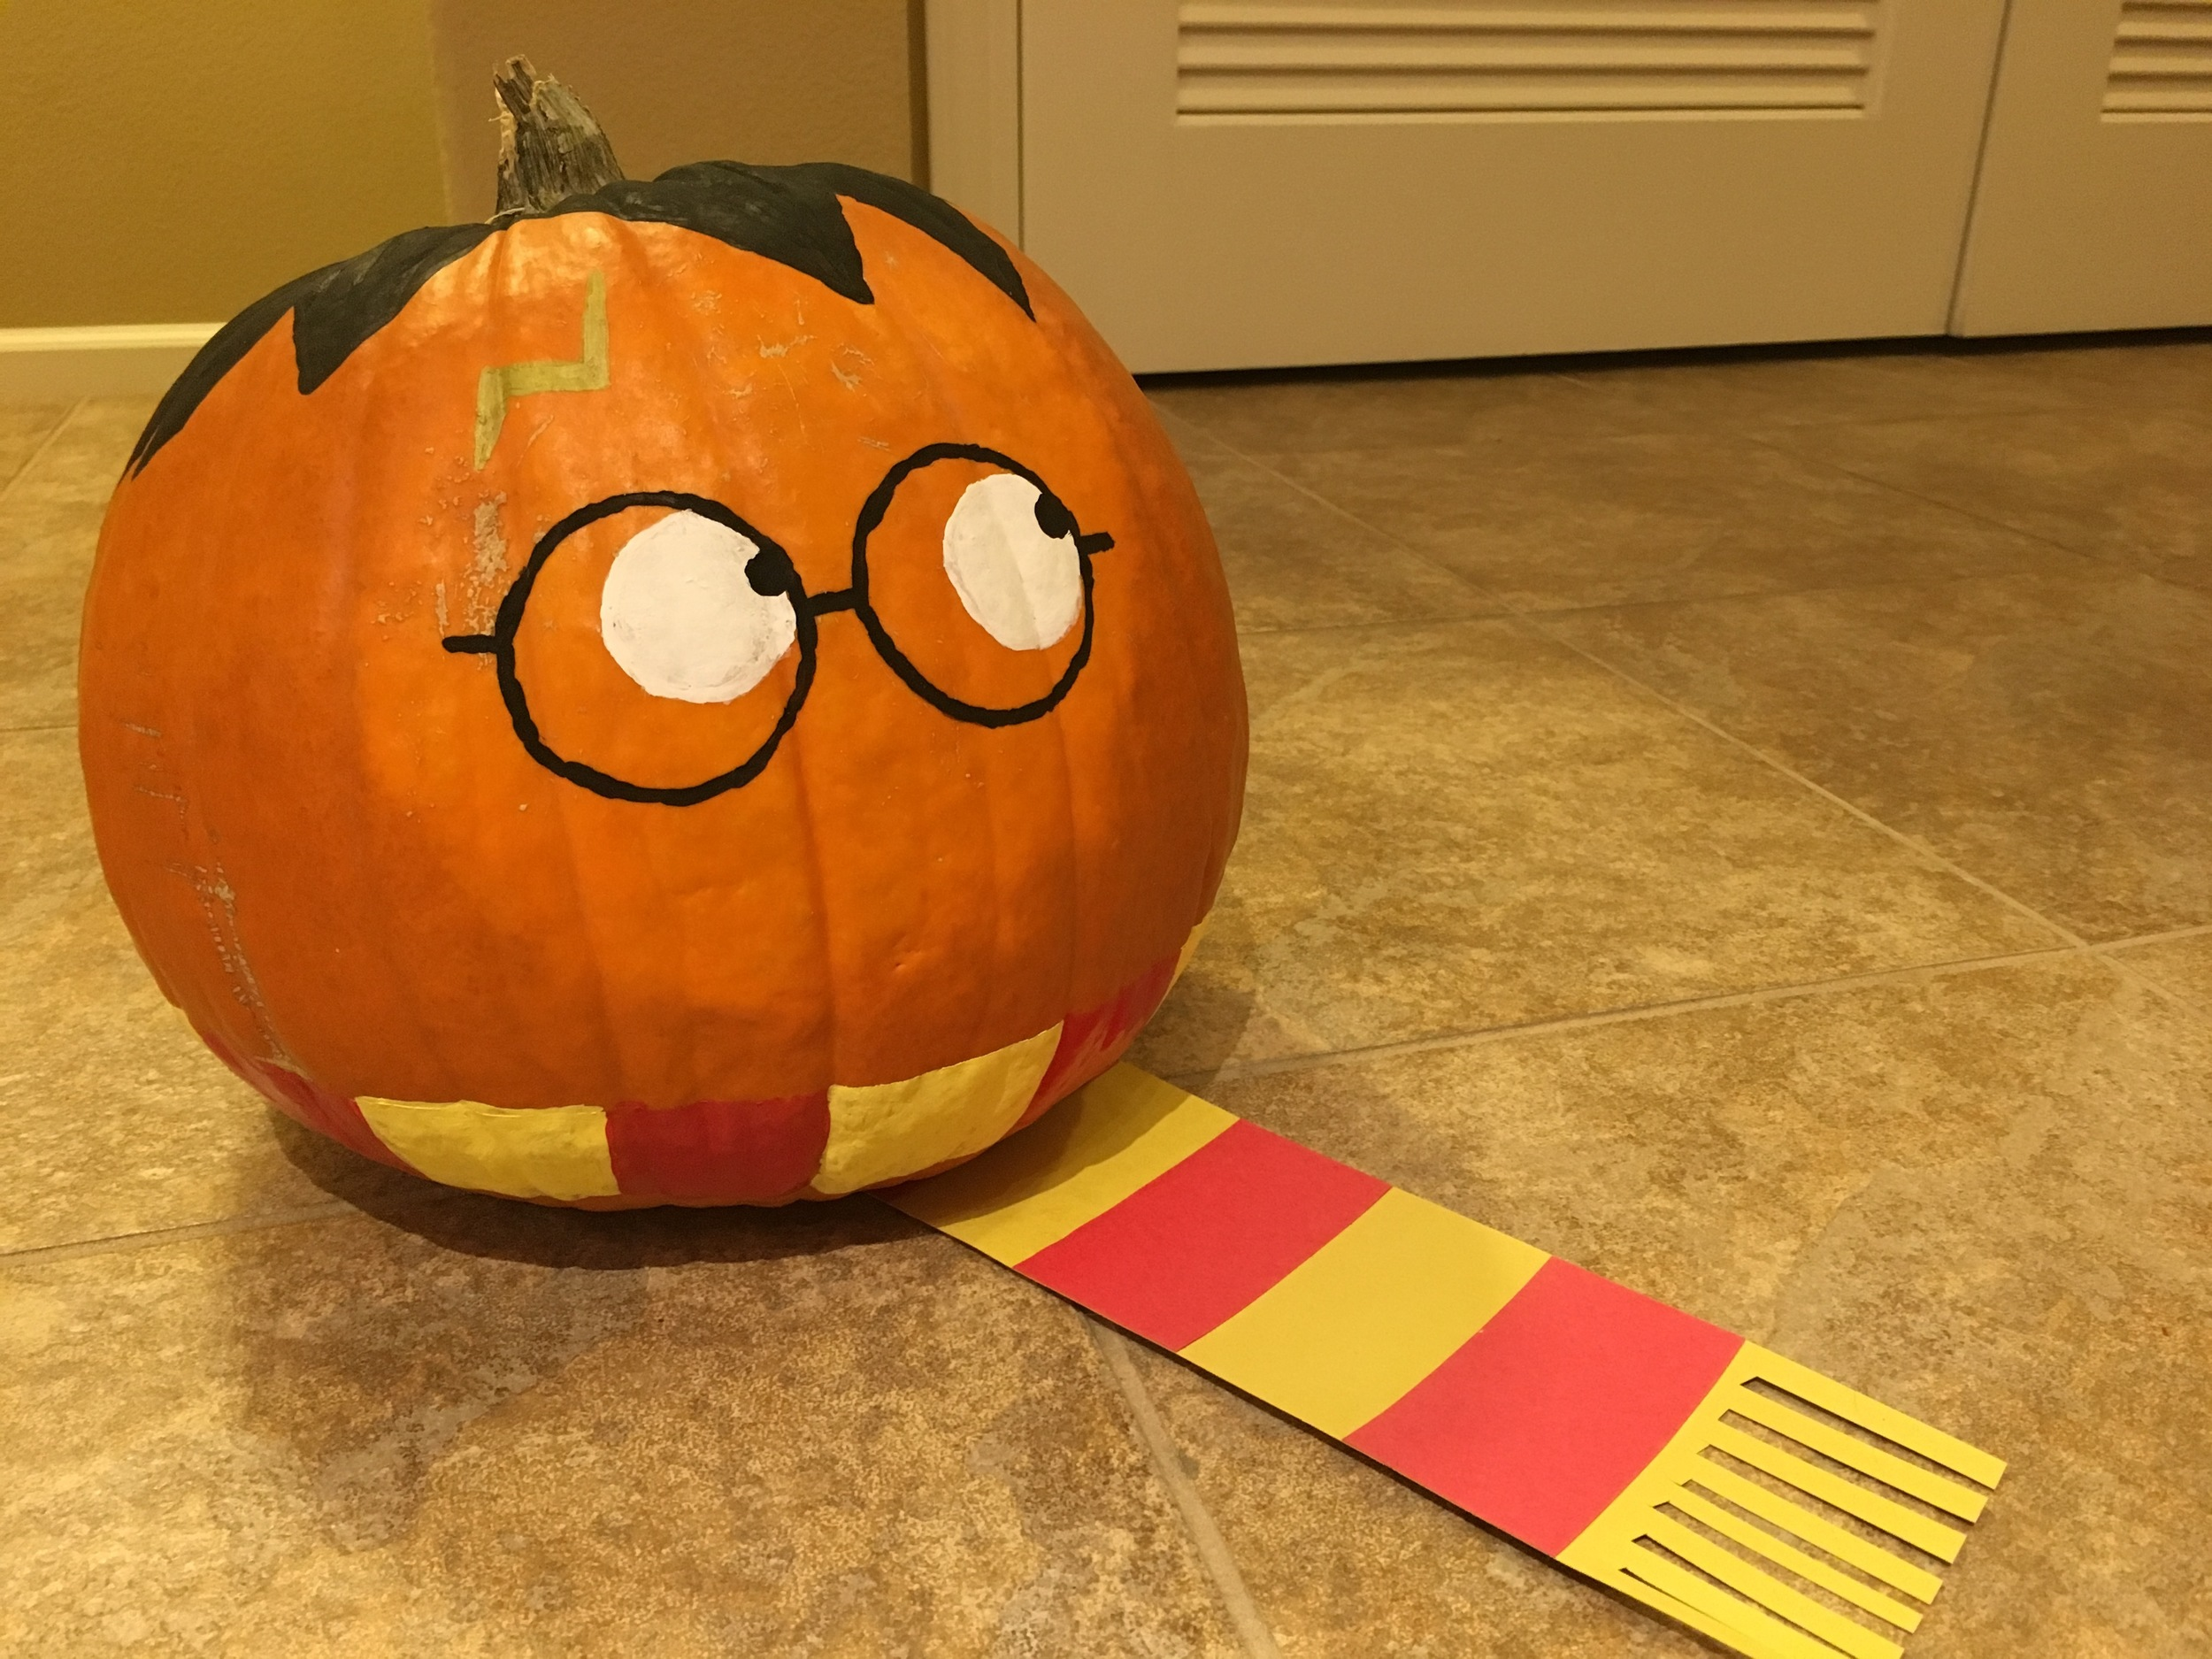 Lydia's spot on Harry Potter pumpkin, complete with his famous striped scarf!